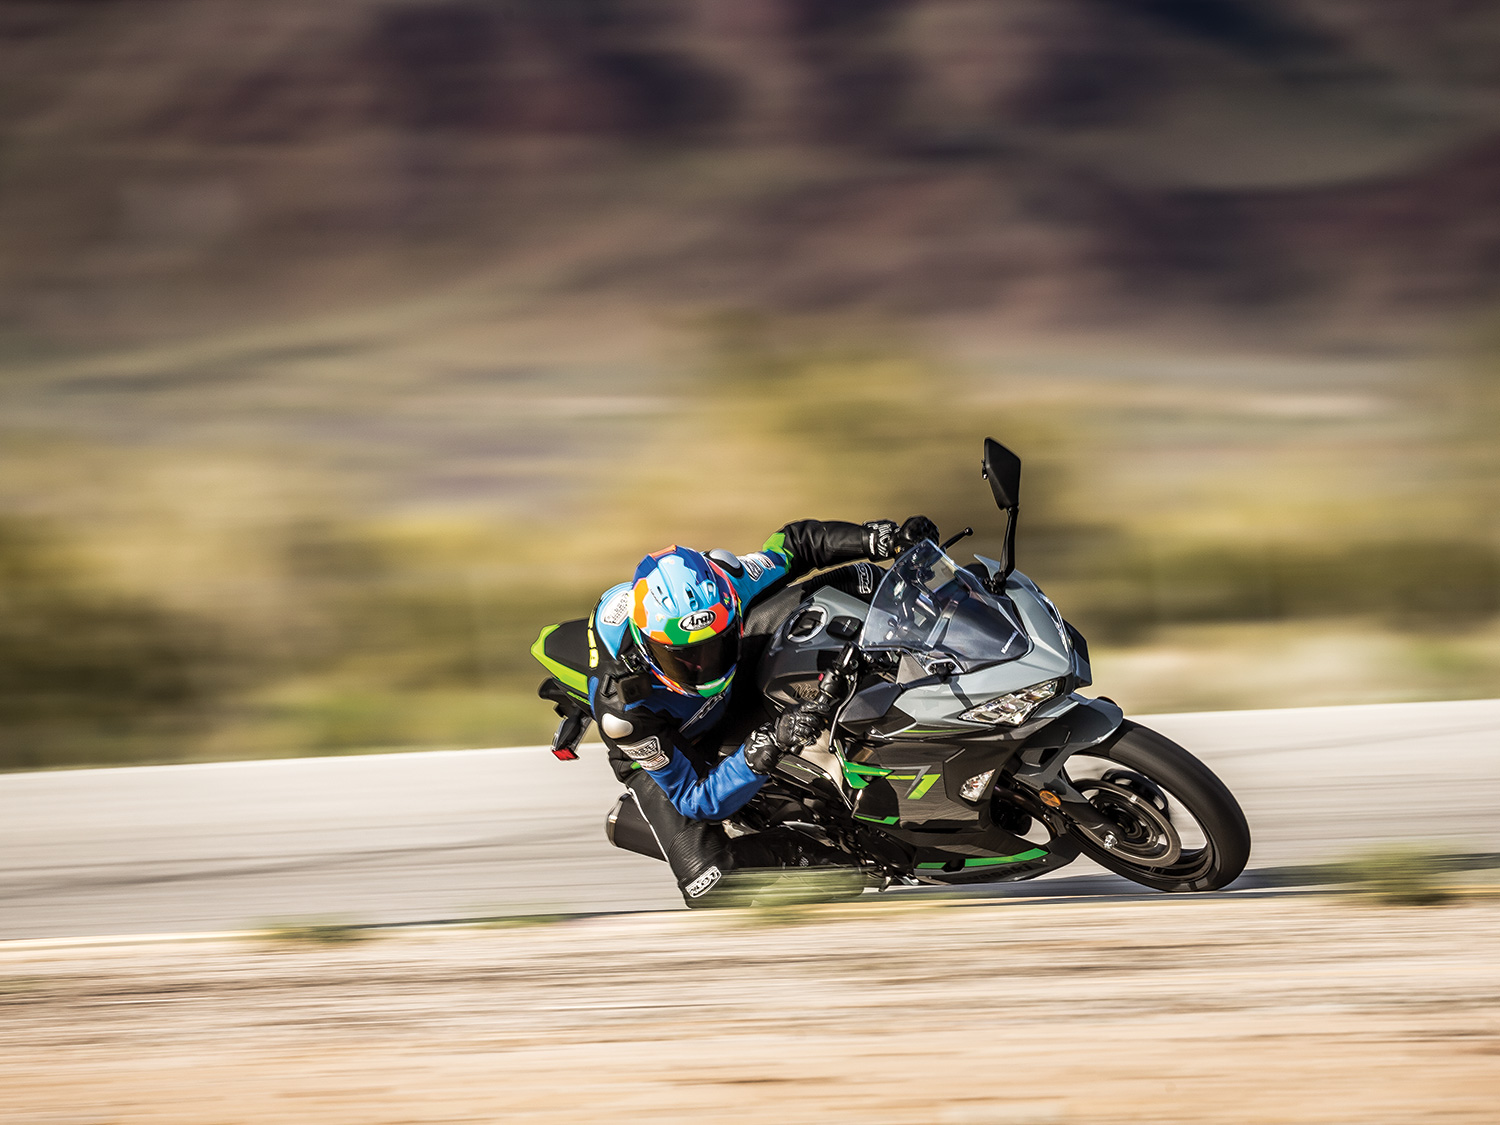 Benchracing: Motorcycle Riding - Priorities | Cycle World